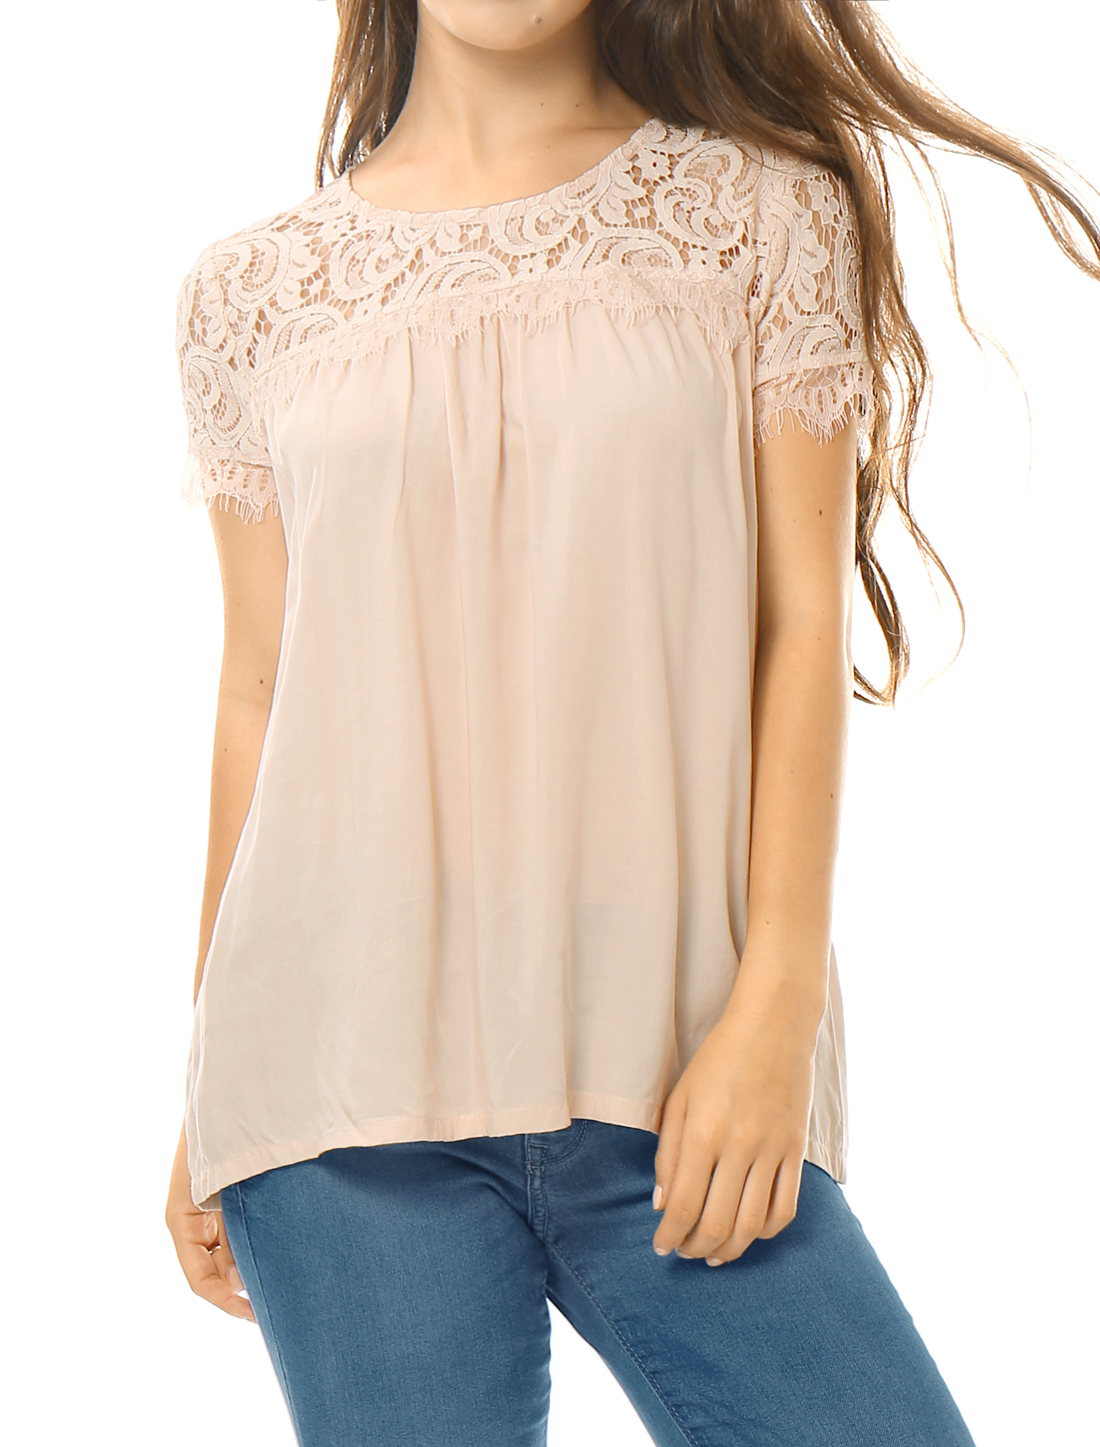 Allegra K Women Lace Panel Upper Semi Sheer Yoke Short Sleeves Blouse Pink M